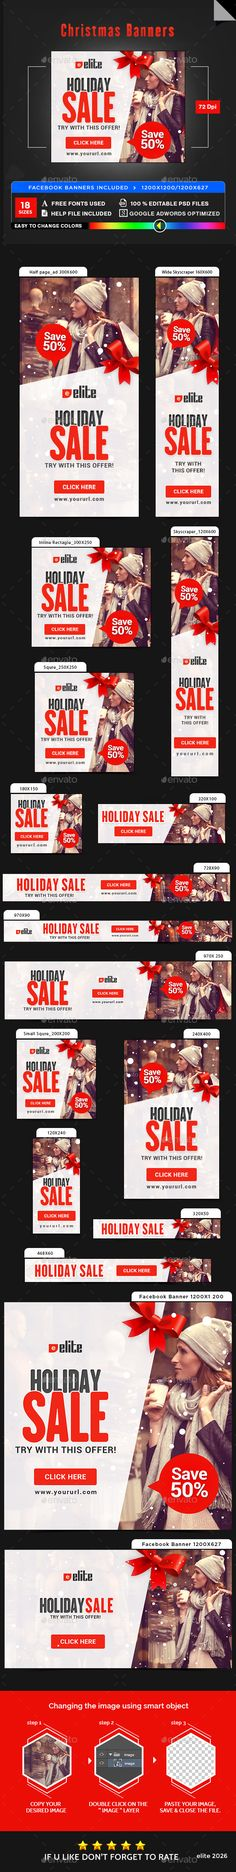 Christmas Banners Template PSD #ads #xmas